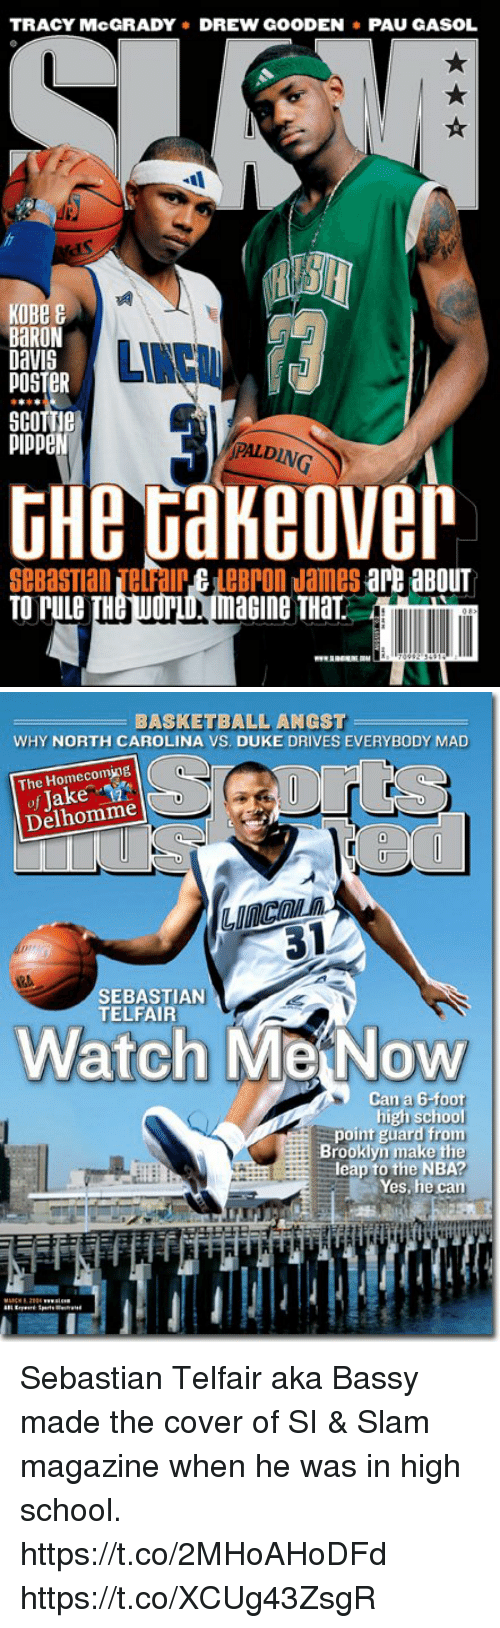 Baron Davis: TRACY McGRADY DREW GOODENPAU GASOL  KOBe  BaRON  Davis  POSTER  pippeN  PAL  DING  THe Gakeove  SeBasTian TelalreLeBron James arB aBOUT  TO PuLe TH  WOPLD magine THaT   BASKETBALL ANGST  WHY NORTH CAROLINA VS. DUKE DRIVES EVERYBODY MAD  The Homecoming  of Jake  Delhomme  31  SEBASTIAN  TELFAIR  Watch MeiNow  Can a G-foot  high school  point guard from  Brooklyn make the  leap to the NBA?  Yes, he carn Sebastian Telfair aka Bassy made the cover of SI & Slam magazine when he was in high school. https://t.co/2MHoAHoDFd https://t.co/XCUg43ZsgR